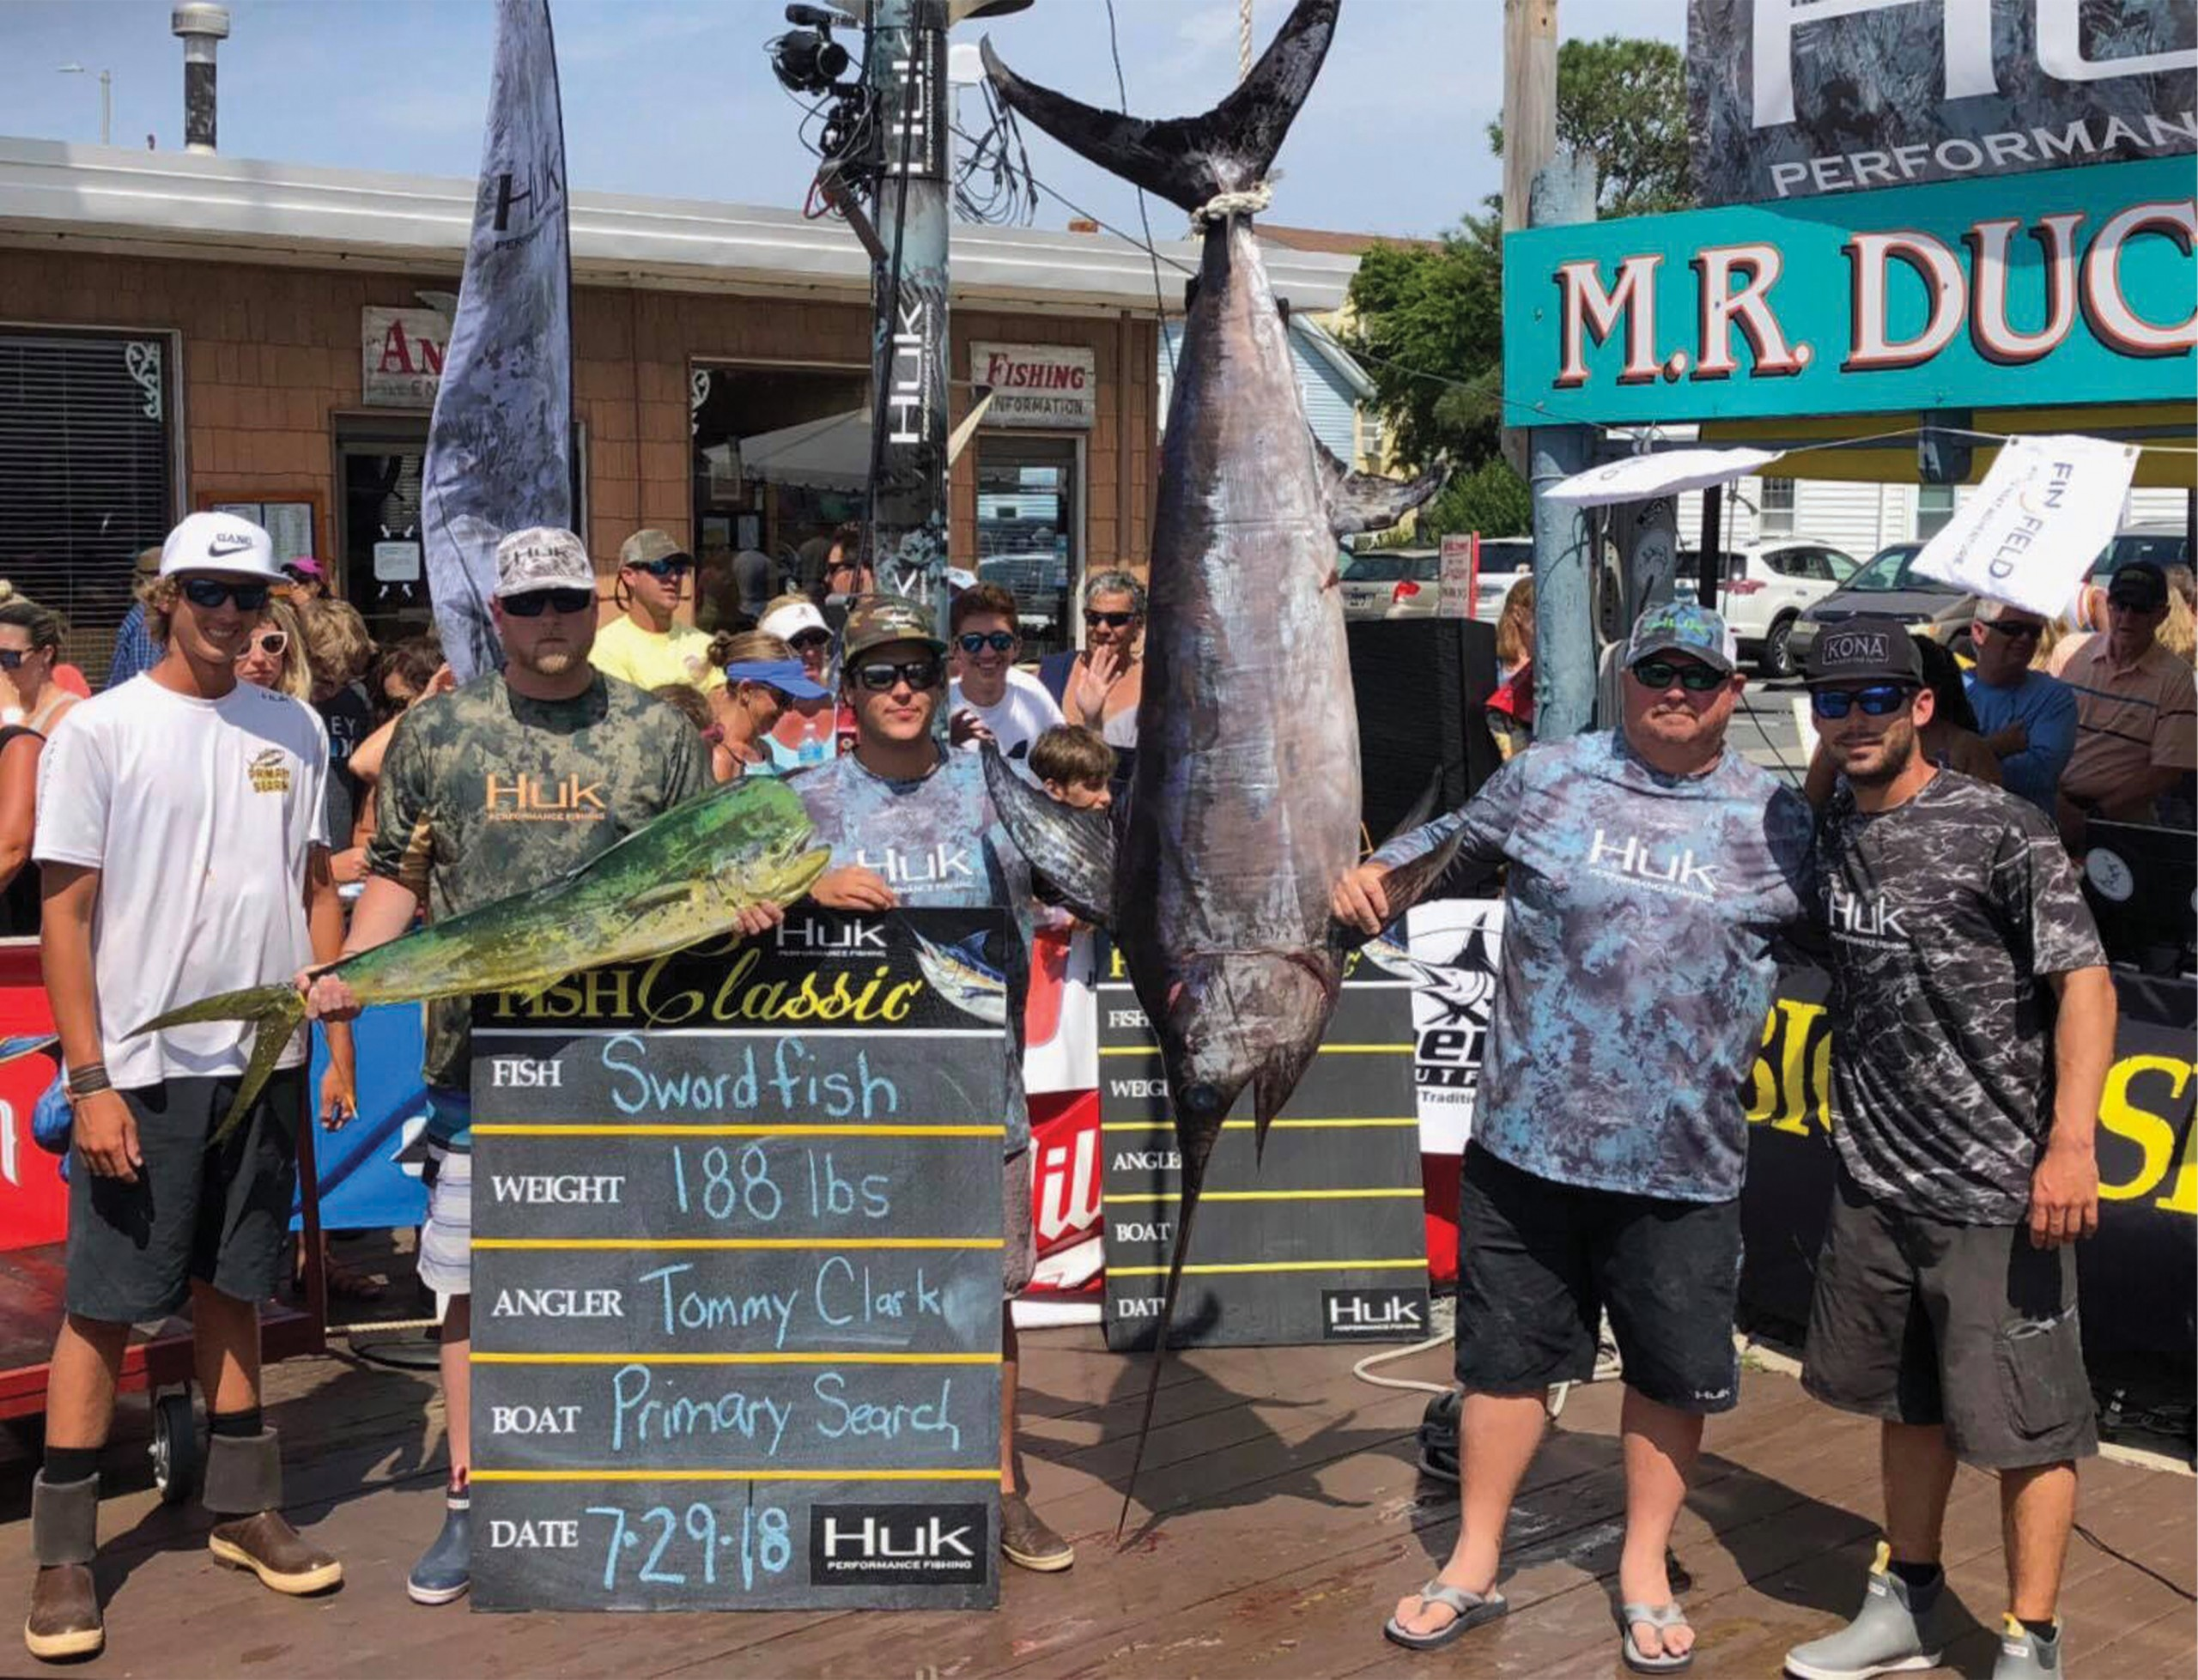 Primary Search crew weighing 188 lbs swordfish in Ocean City, Maryland